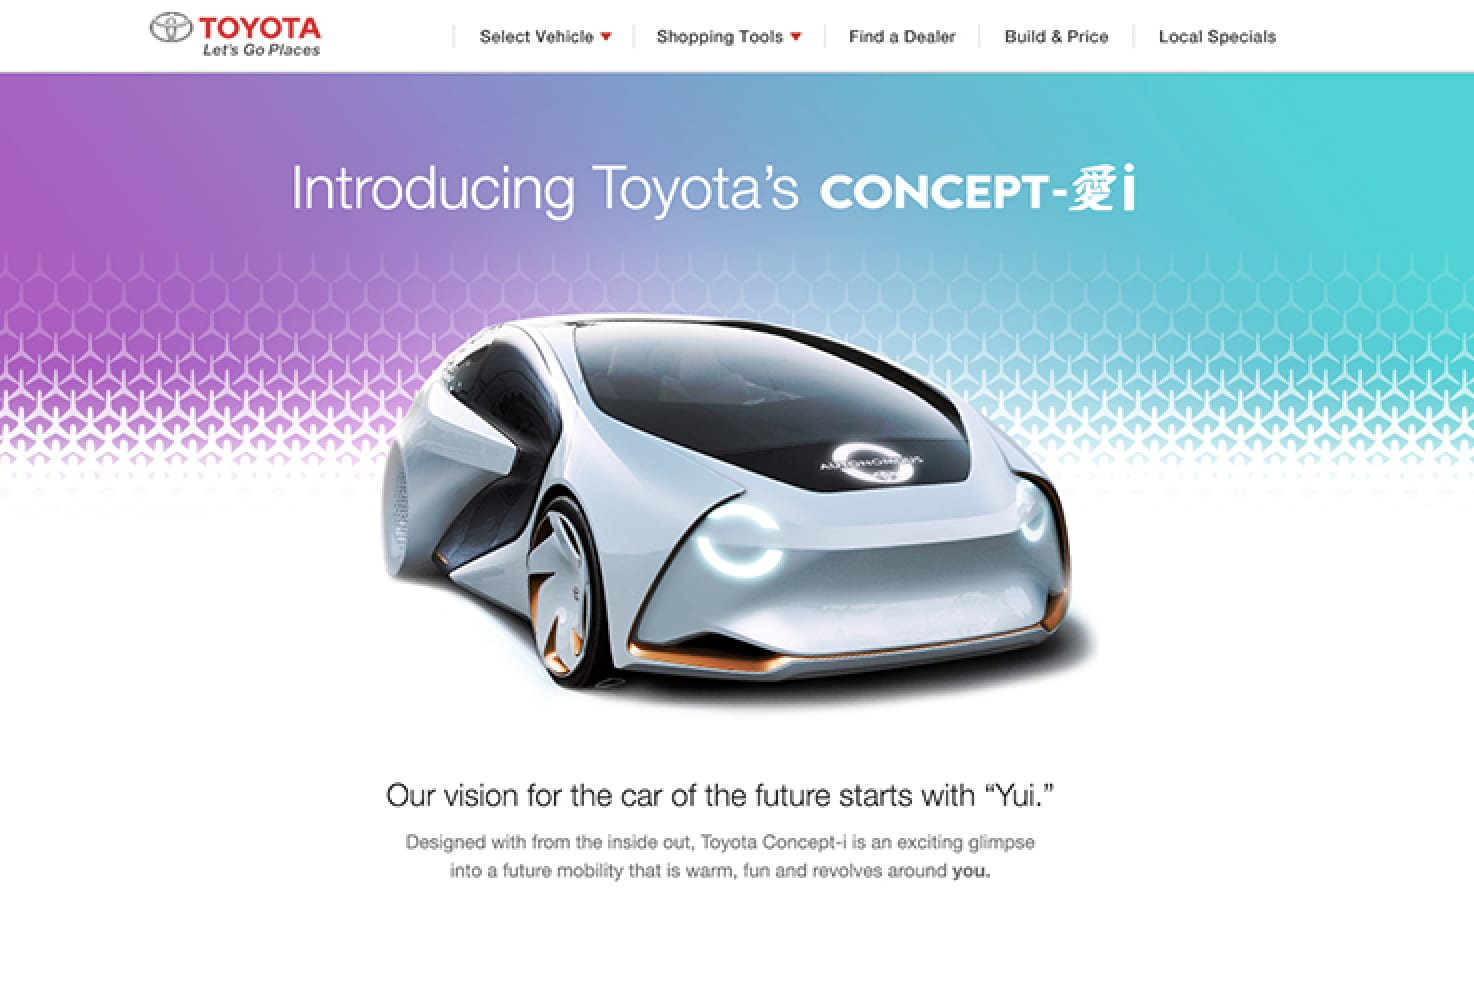 Global launch of Toyota Concept-i